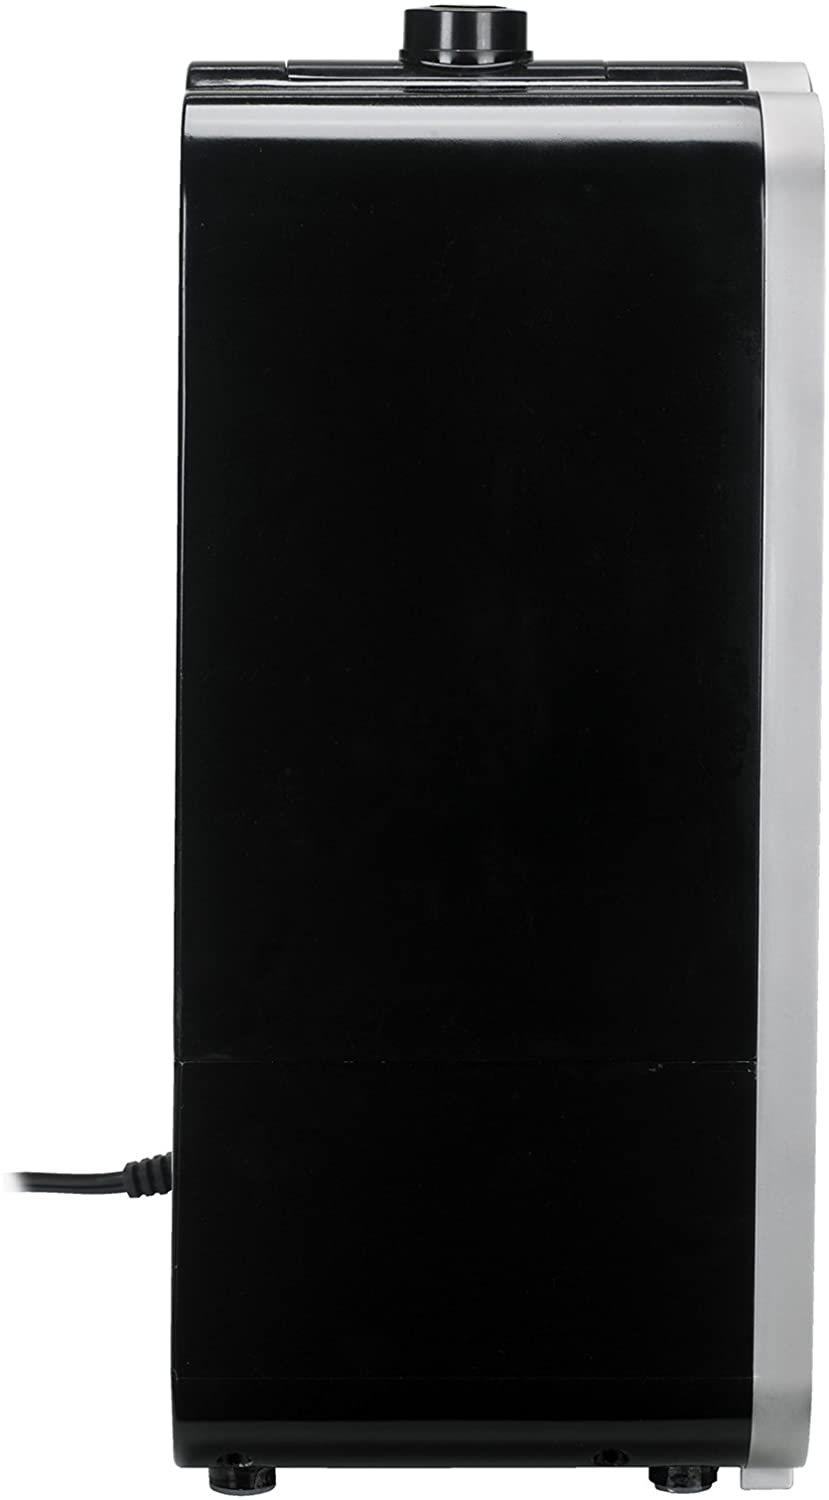 Pure Guardian H8000B Ultrasonic Warm and Cool Mist Humidifier, Extension Wand, 120 Hrs. Run Time, 2 Gal. Tank , 500 Sq. Ft. Coverage, Large Rooms, Quiet, Filter Free, Treated Tank Resists Mold